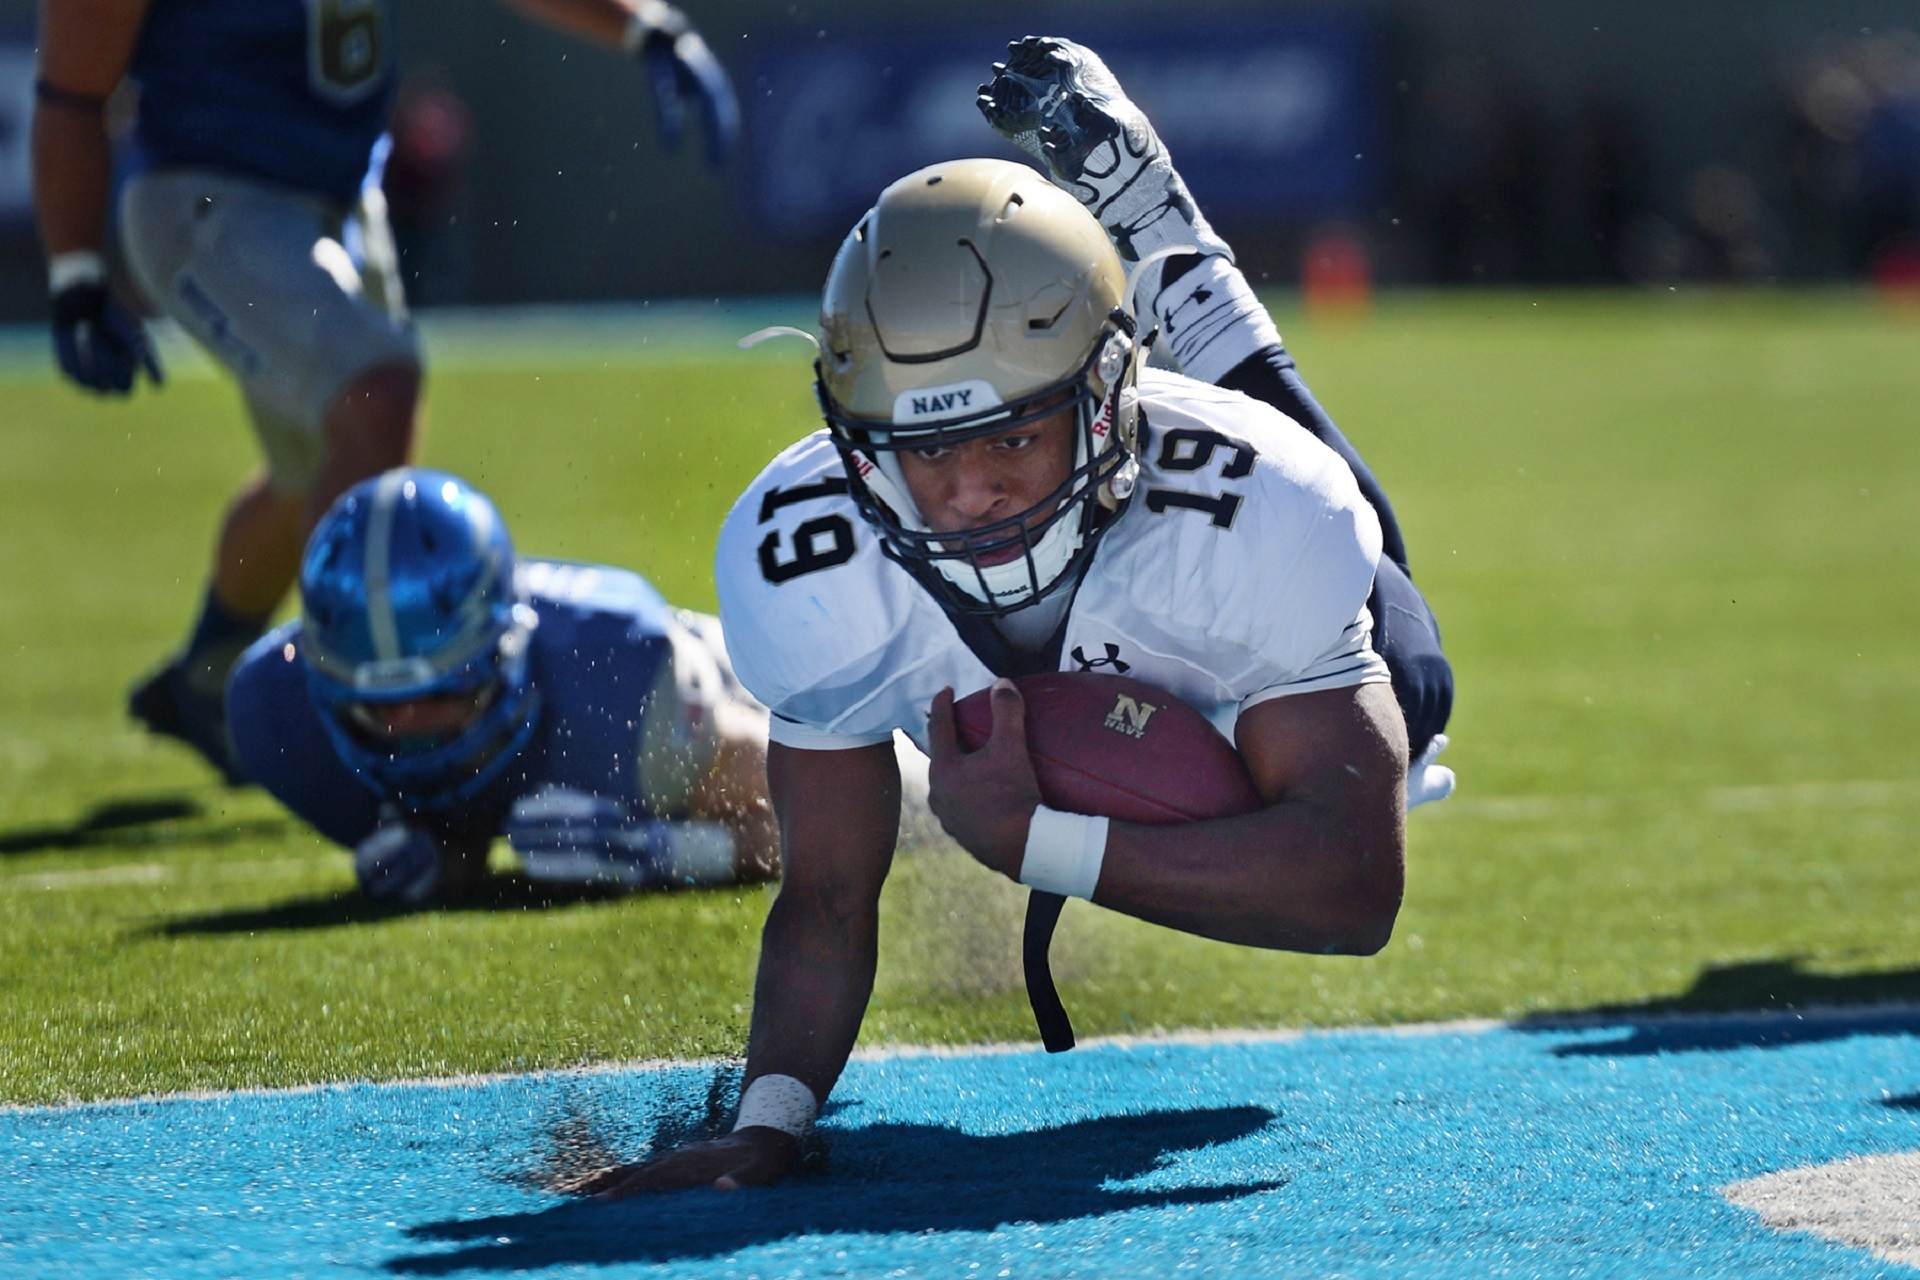 football-american-game-runner.jpg